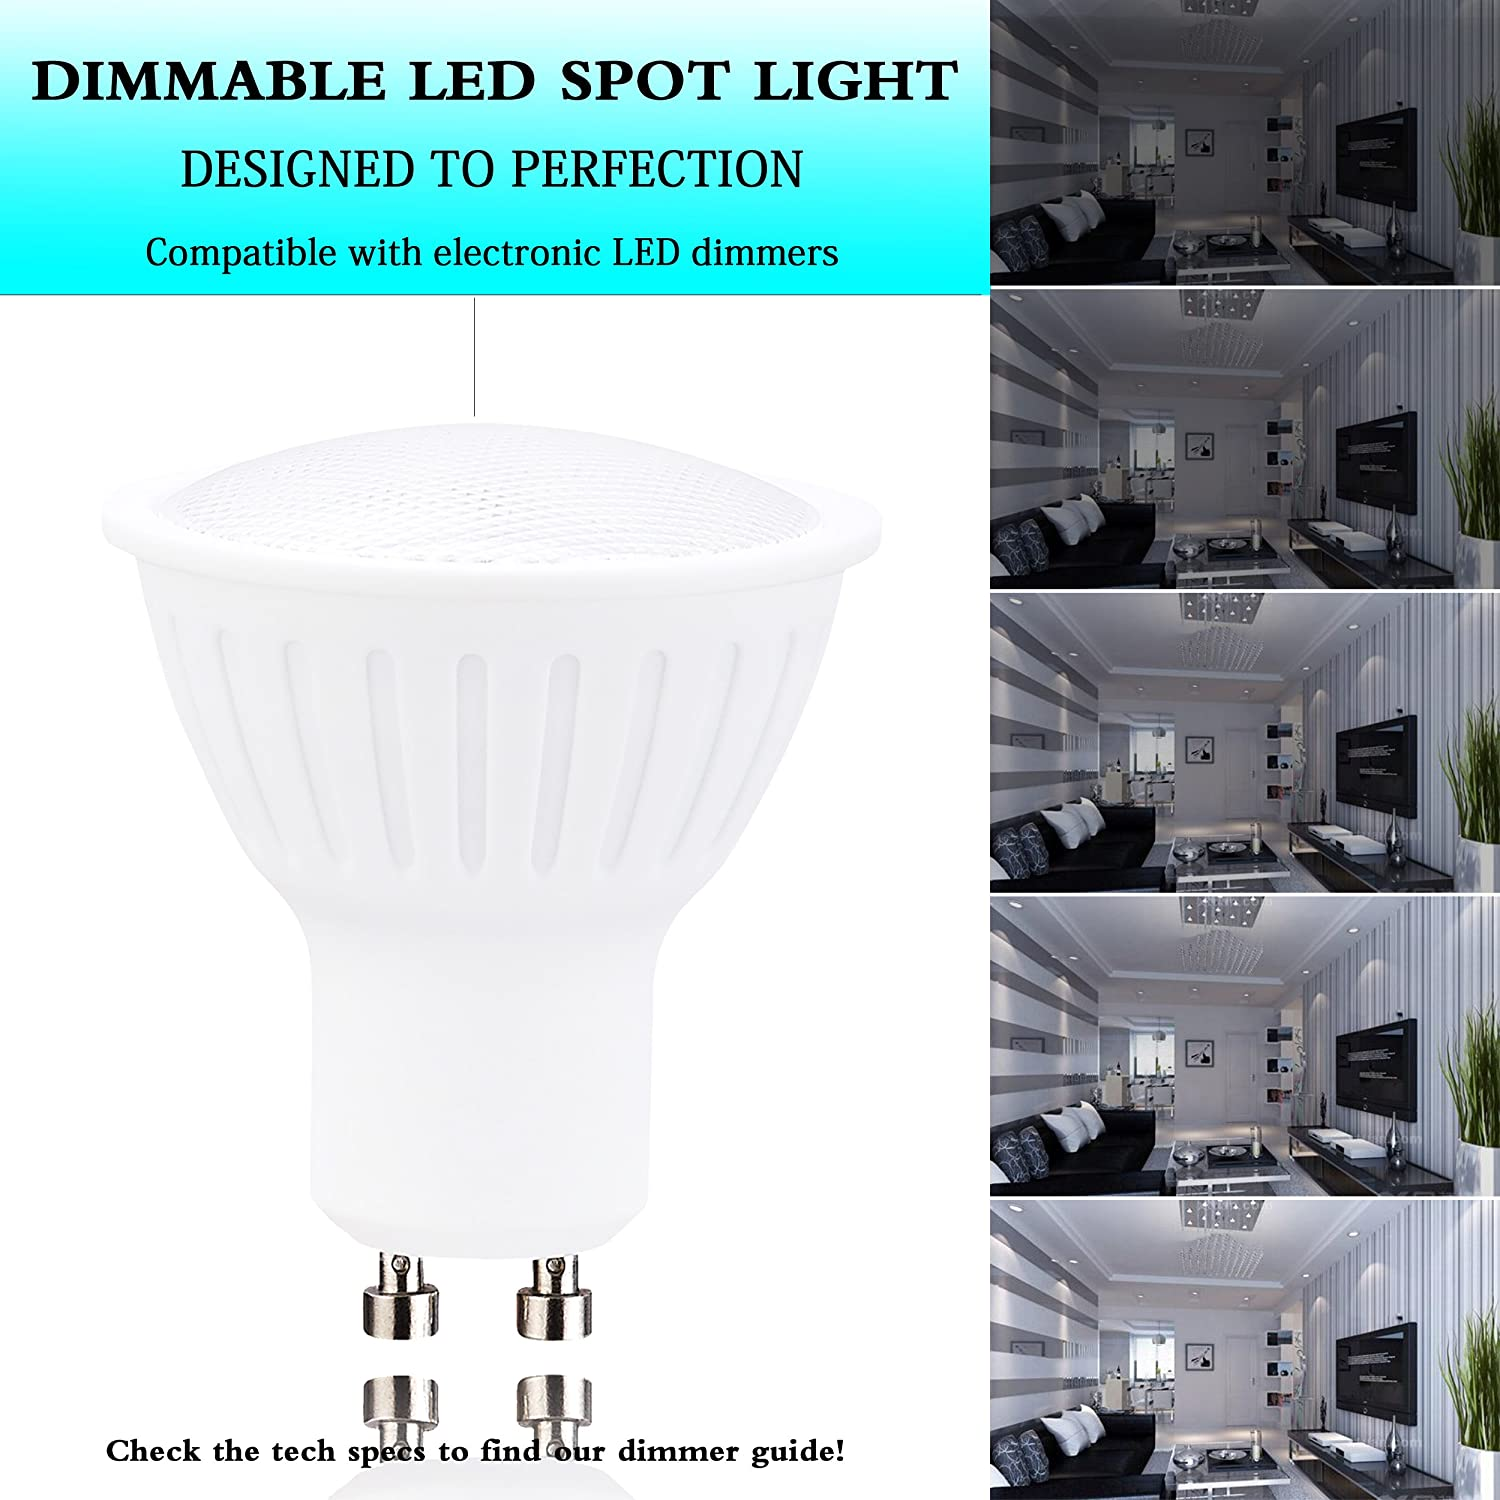 4 Pack Spotlight Recessed Dimmable,Track Lighting Replacement Wide Flood Lights,700lumens,120 Beam Angle,Warm White 2700K Lights for Ceiling Fan GU10 Led Light Bulbs 7Watt 65w Halogen Equivalent